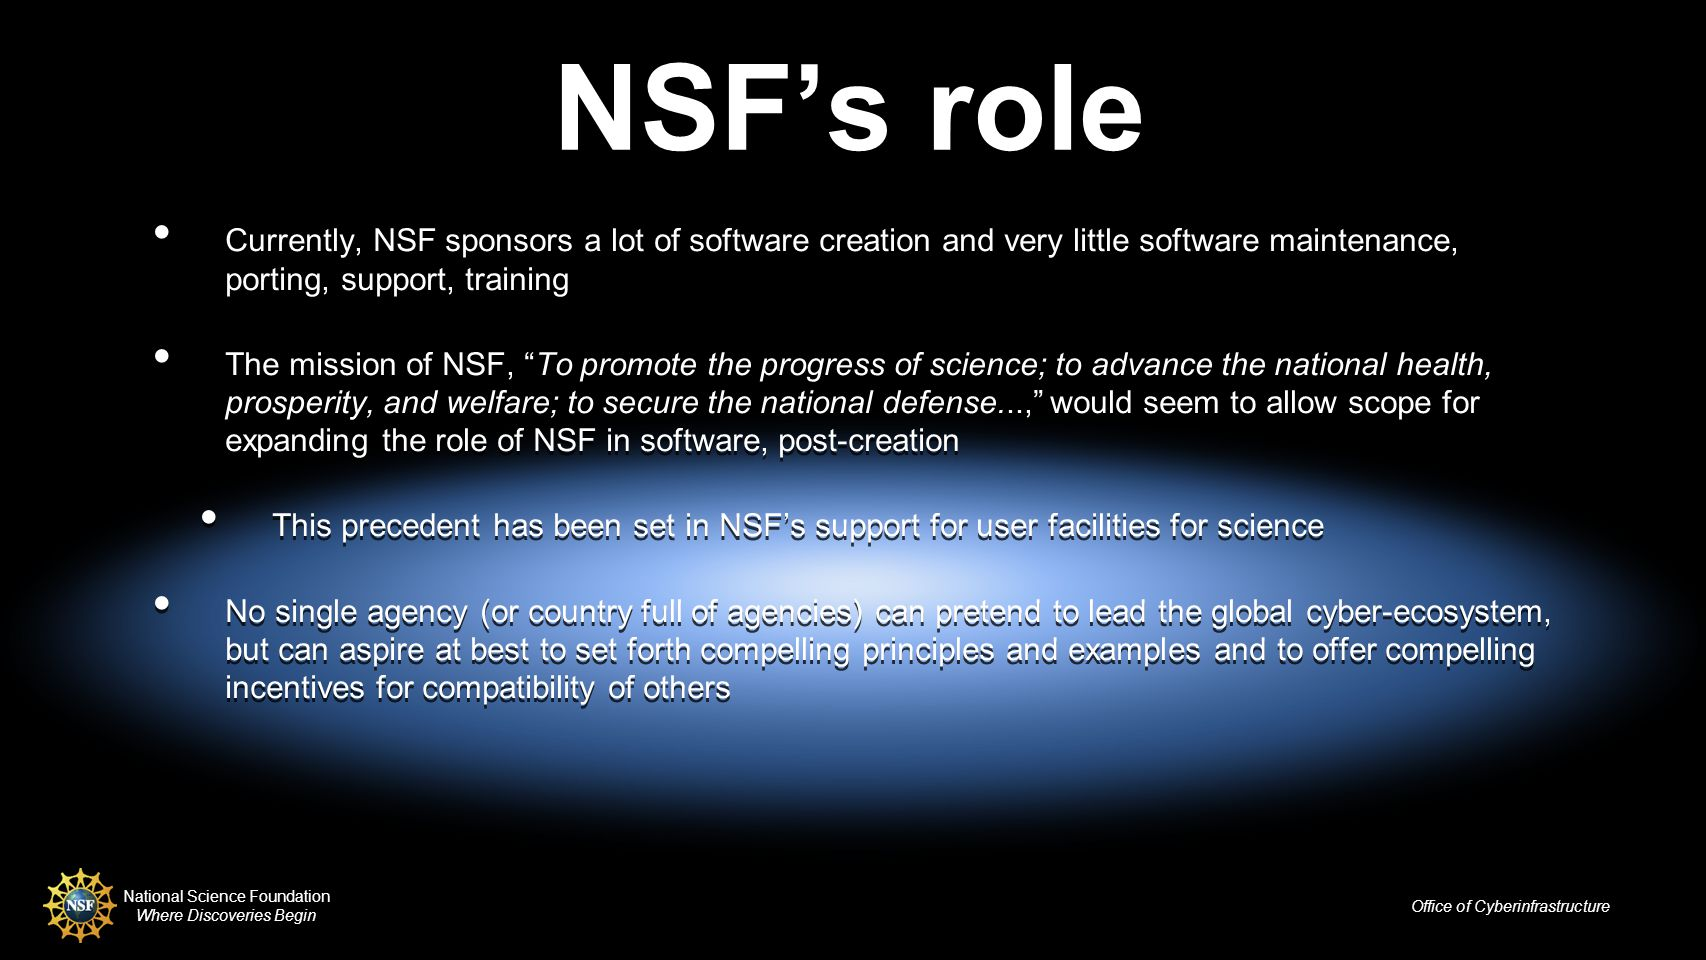 National Science Foundation Where Discoveries Begin Office of Cyberinfrastructure NSFs role Currently, NSF sponsors a lot of software creation and very little software maintenance, porting, support, training The mission of NSF, To promote the progress of science; to advance the national health, prosperity, and welfare; to secure the national defense..., would seem to allow scope for expanding the role of NSF in software, post-creation This precedent has been set in NSFs support for user facilities for science No single agency (or country full of agencies) can pretend to lead the global cyber-ecosystem, but can aspire at best to set forth compelling principles and examples and to offer compelling incentives for compatibility of others Currently, NSF sponsors a lot of software creation and very little software maintenance, porting, support, training The mission of NSF, To promote the progress of science; to advance the national health, prosperity, and welfare; to secure the national defense..., would seem to allow scope for expanding the role of NSF in software, post-creation This precedent has been set in NSFs support for user facilities for science No single agency (or country full of agencies) can pretend to lead the global cyber-ecosystem, but can aspire at best to set forth compelling principles and examples and to offer compelling incentives for compatibility of others